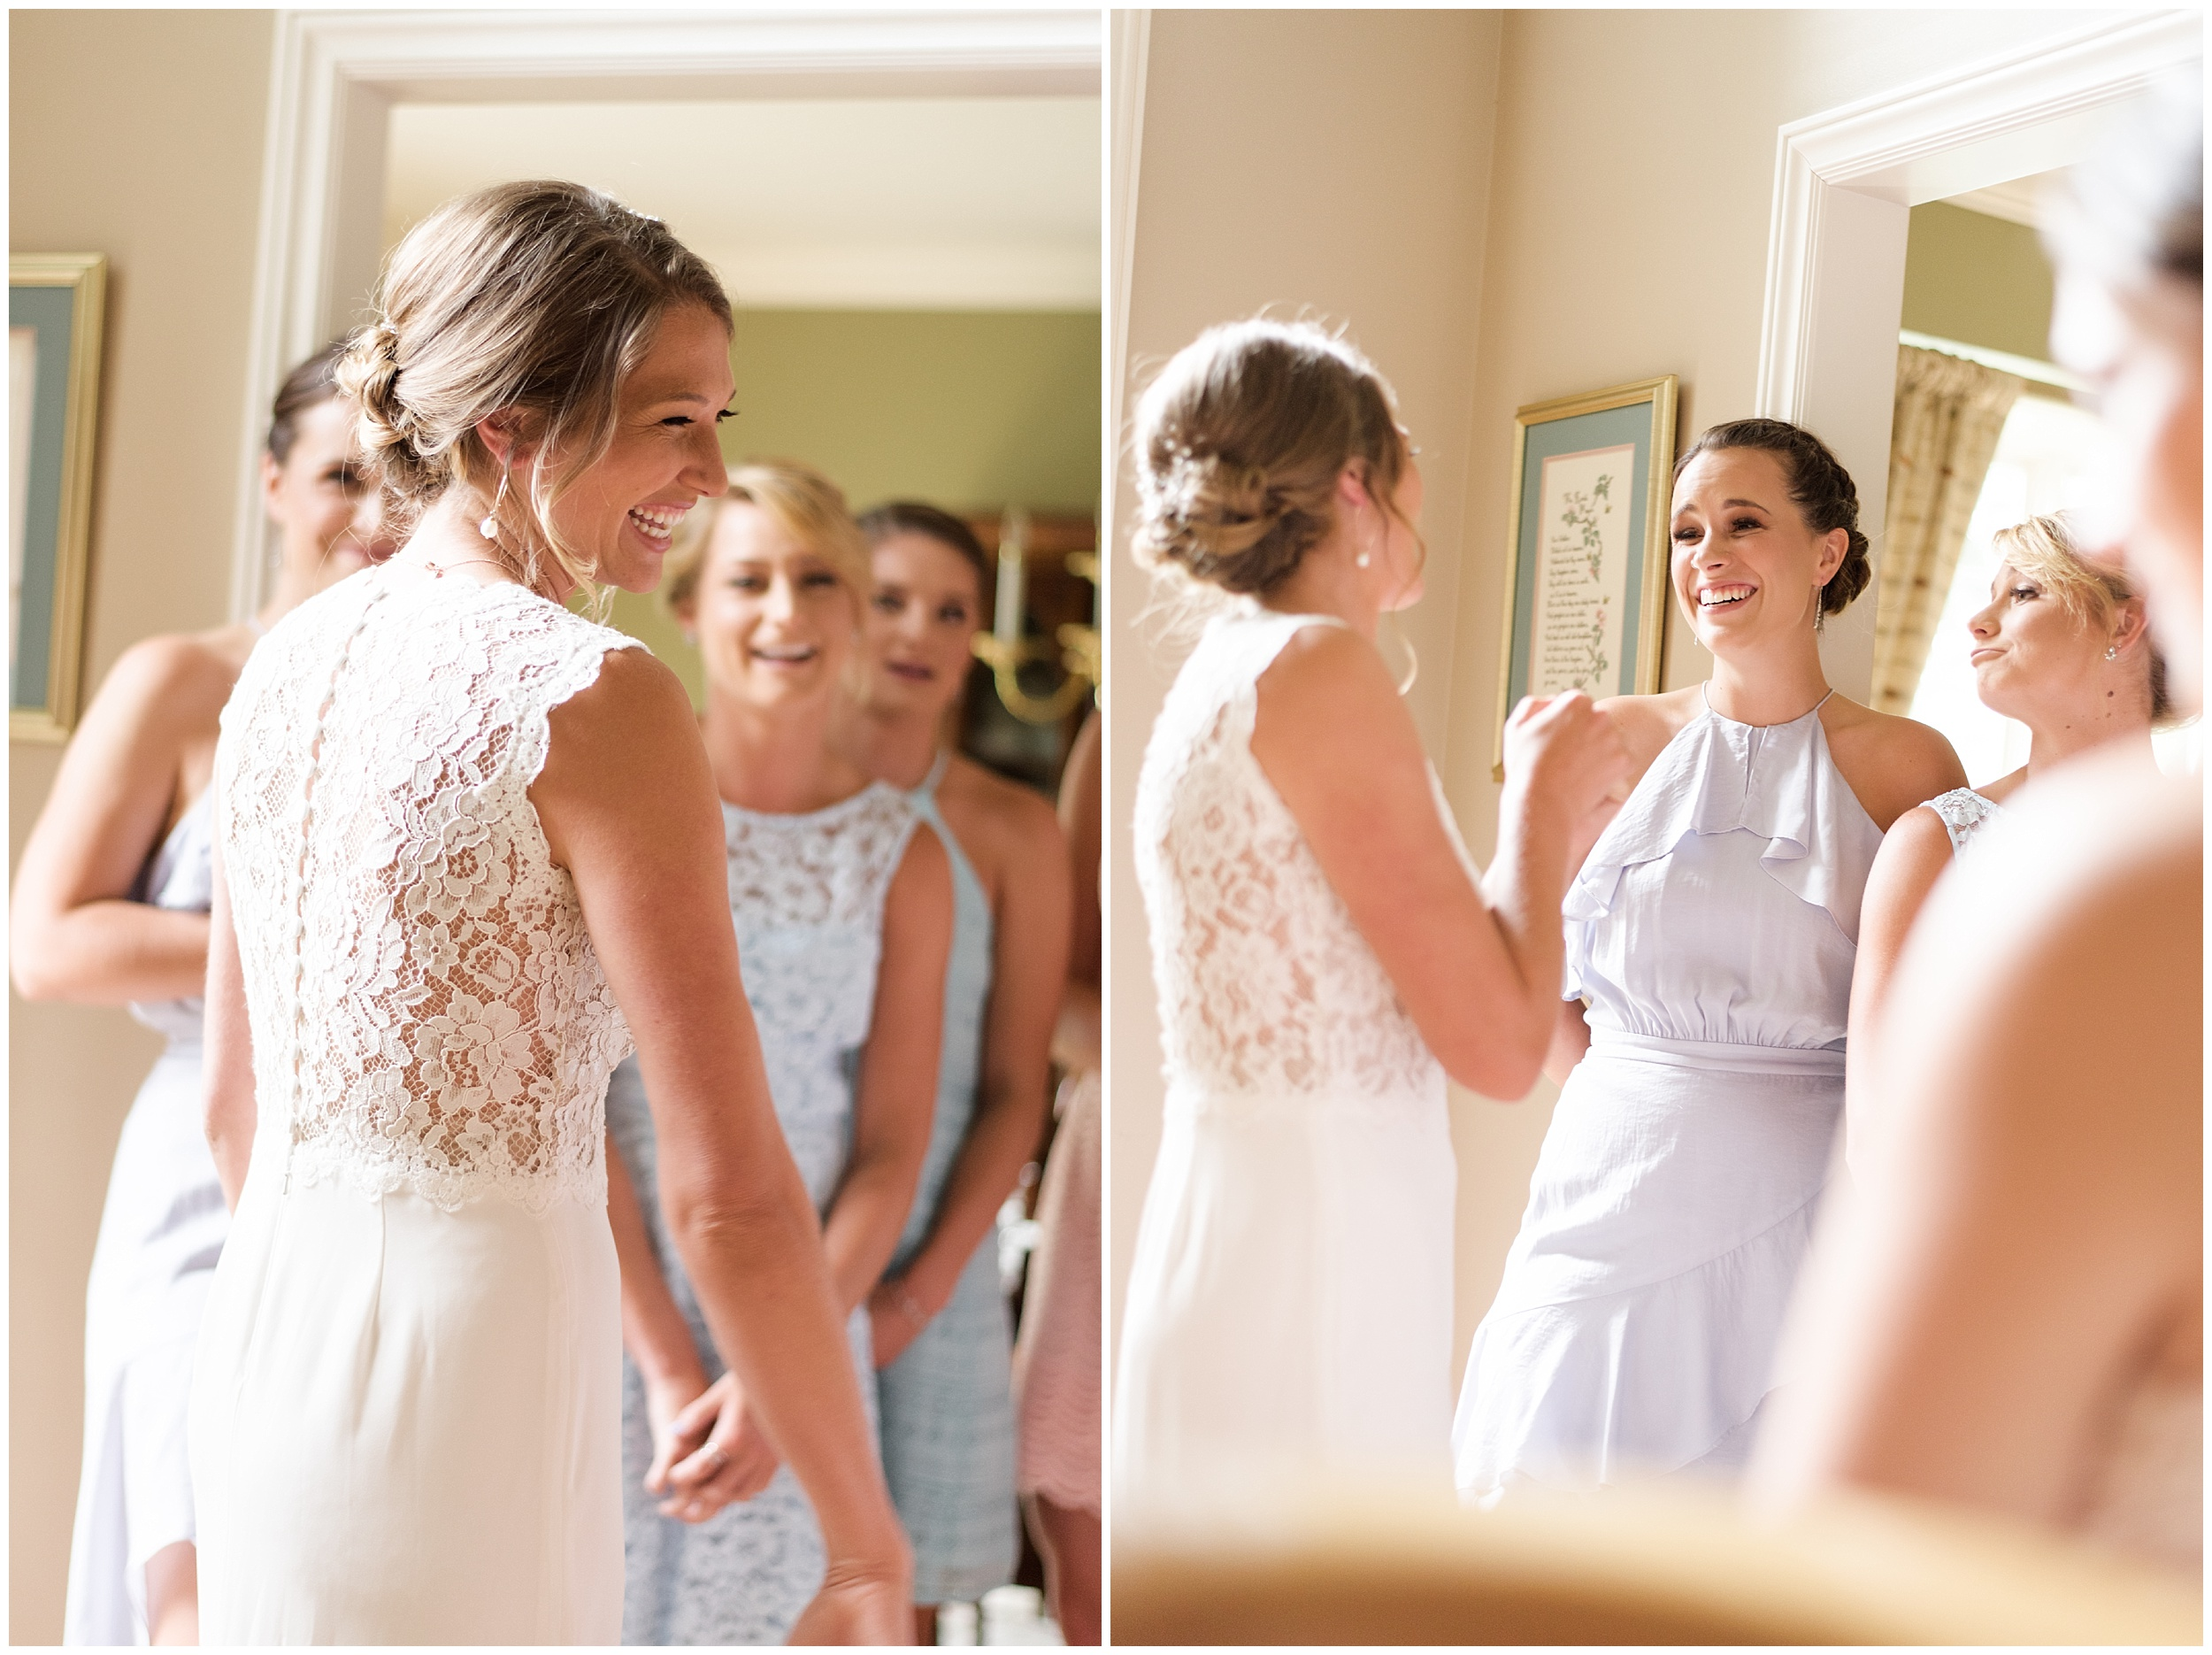 Whimsical-Ethereal-July-Kalamazoo-Wedding-Bright-Airy-Documentary-Milwaukee-Photographer_0013.jpg